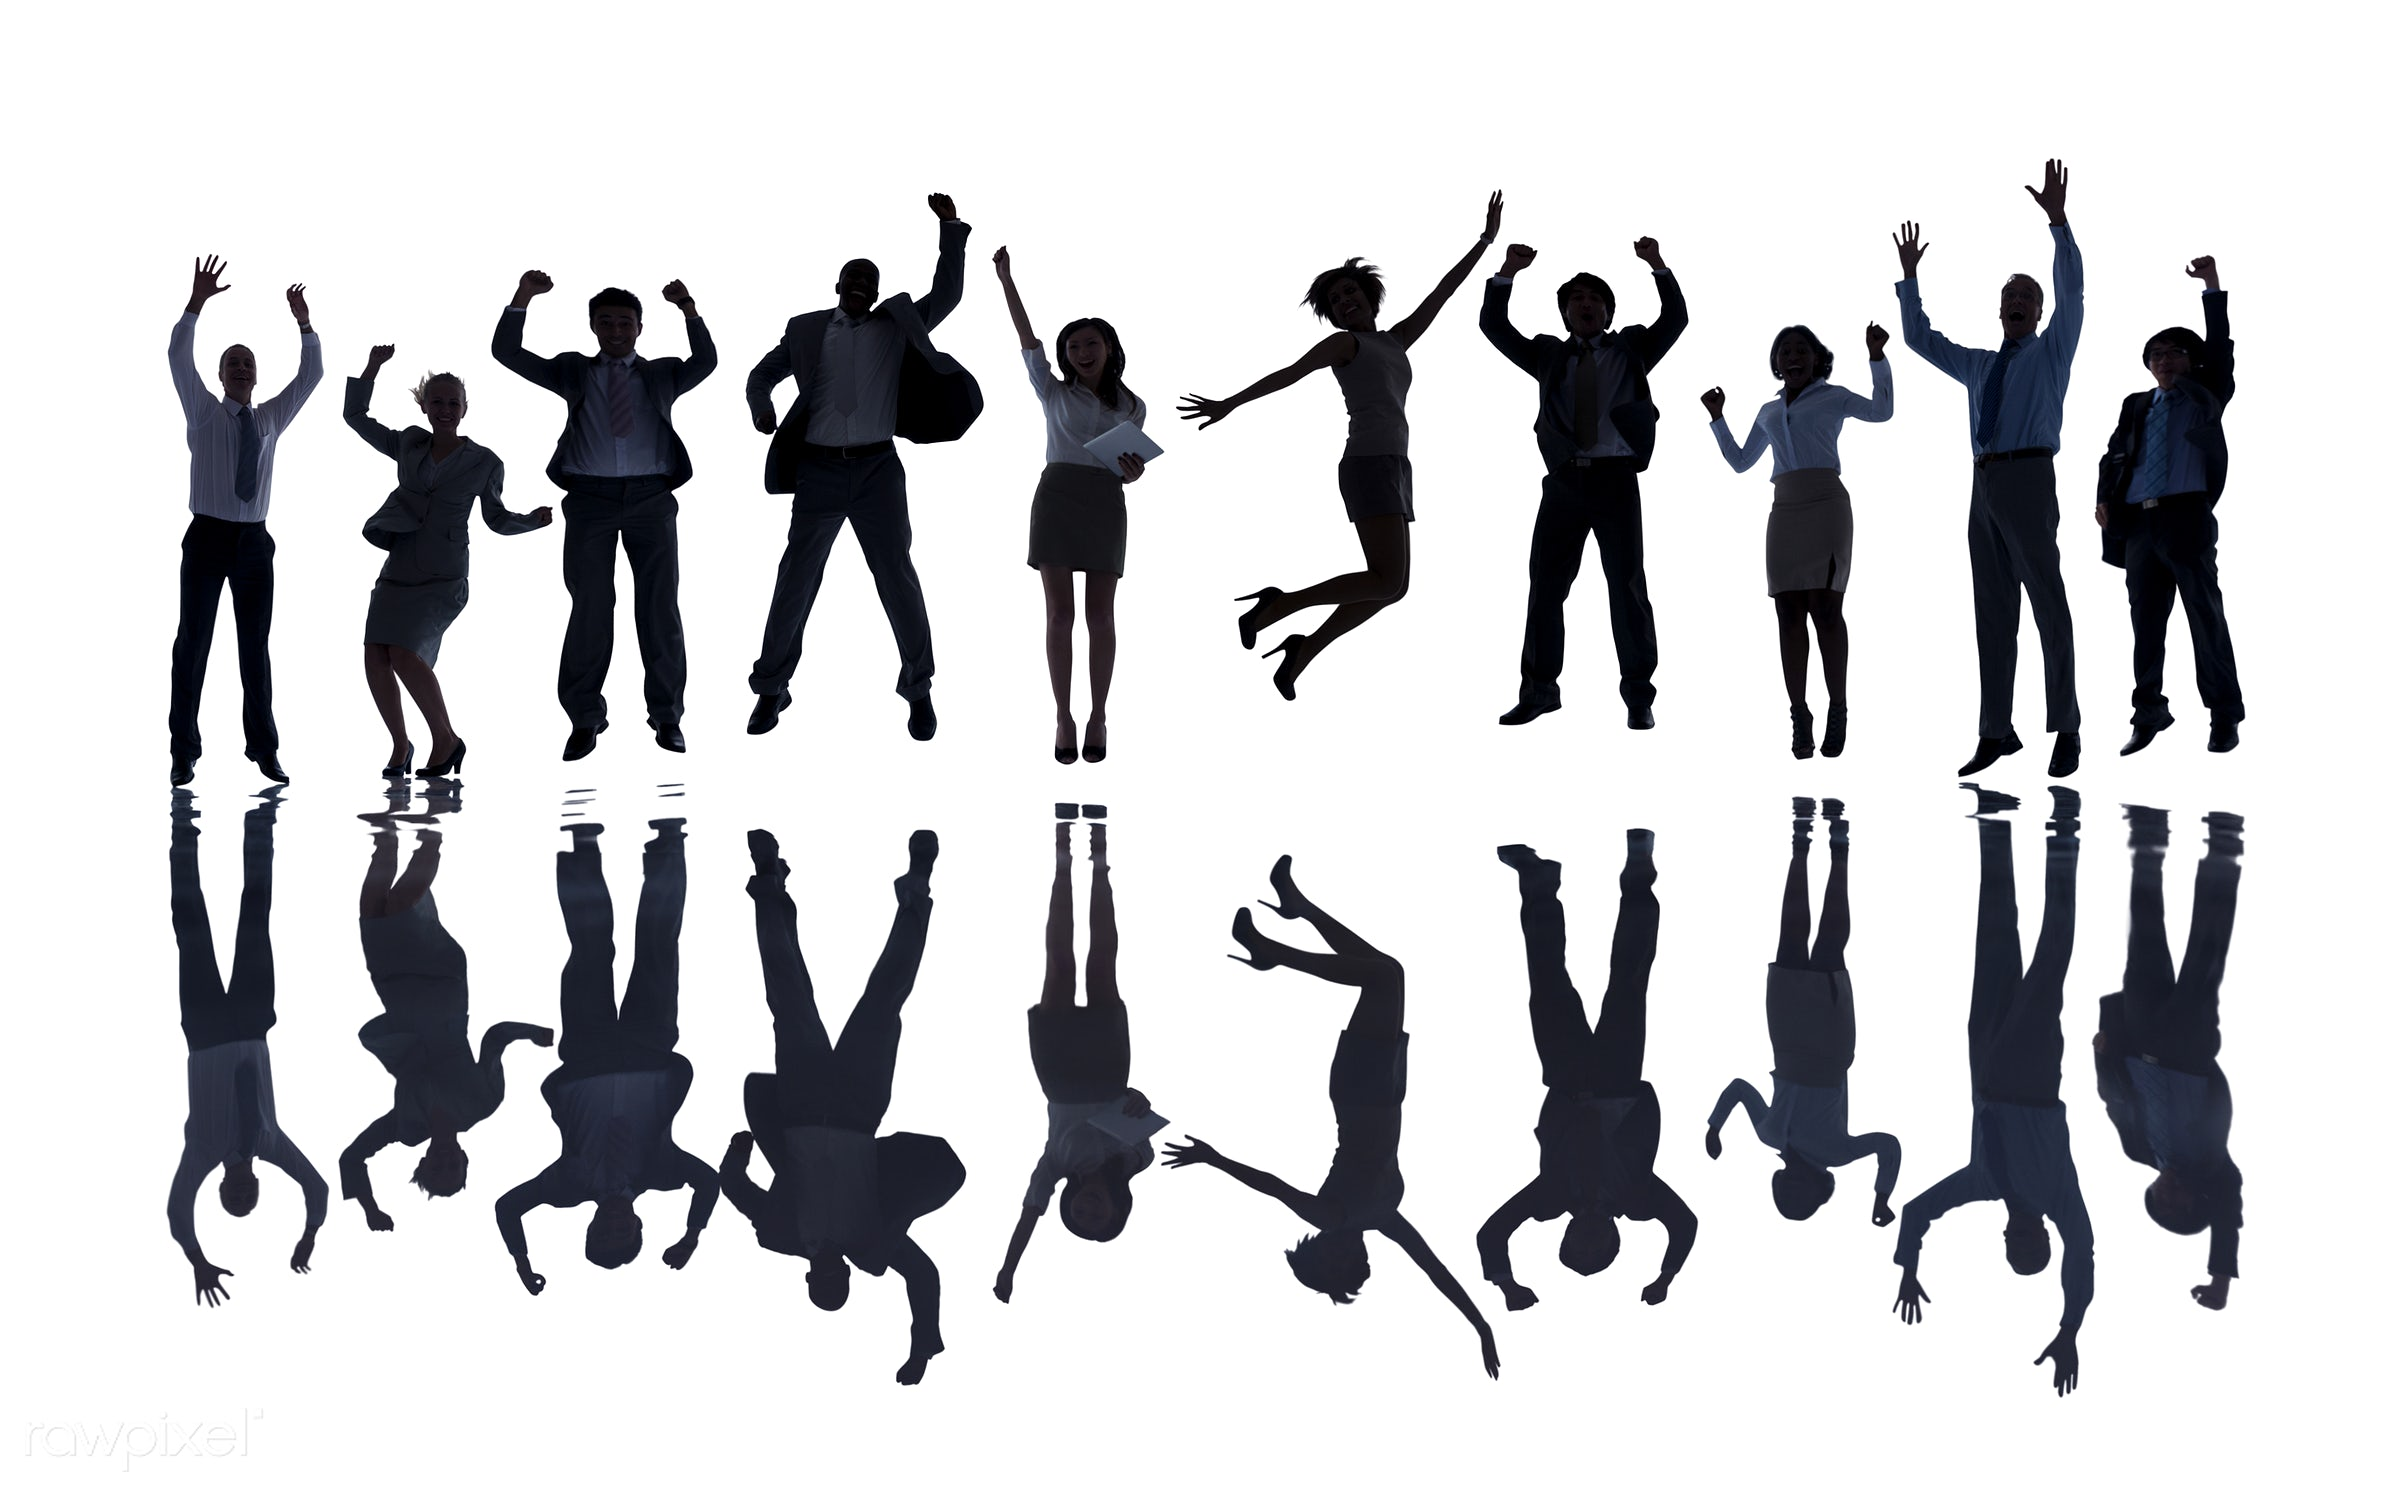 adult, arms outstretched, arms raised, body language, business, business people, business person, business team, businessman...